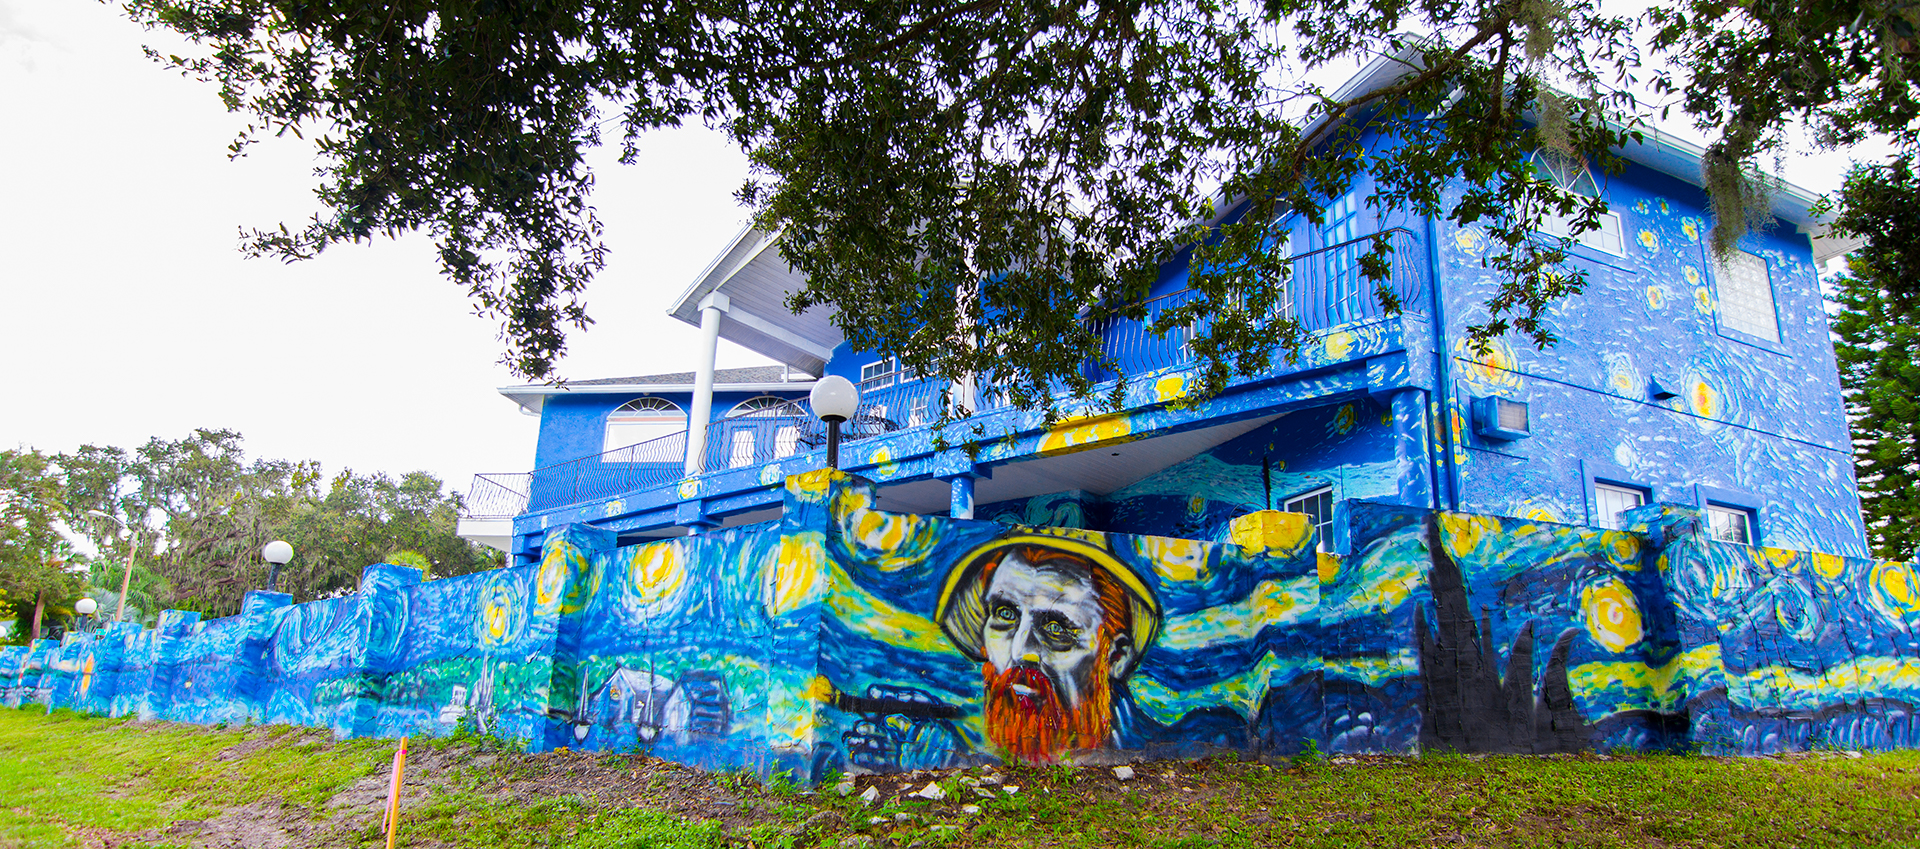 Mount dora city council wages war against van gogh mural for Dora wall mural